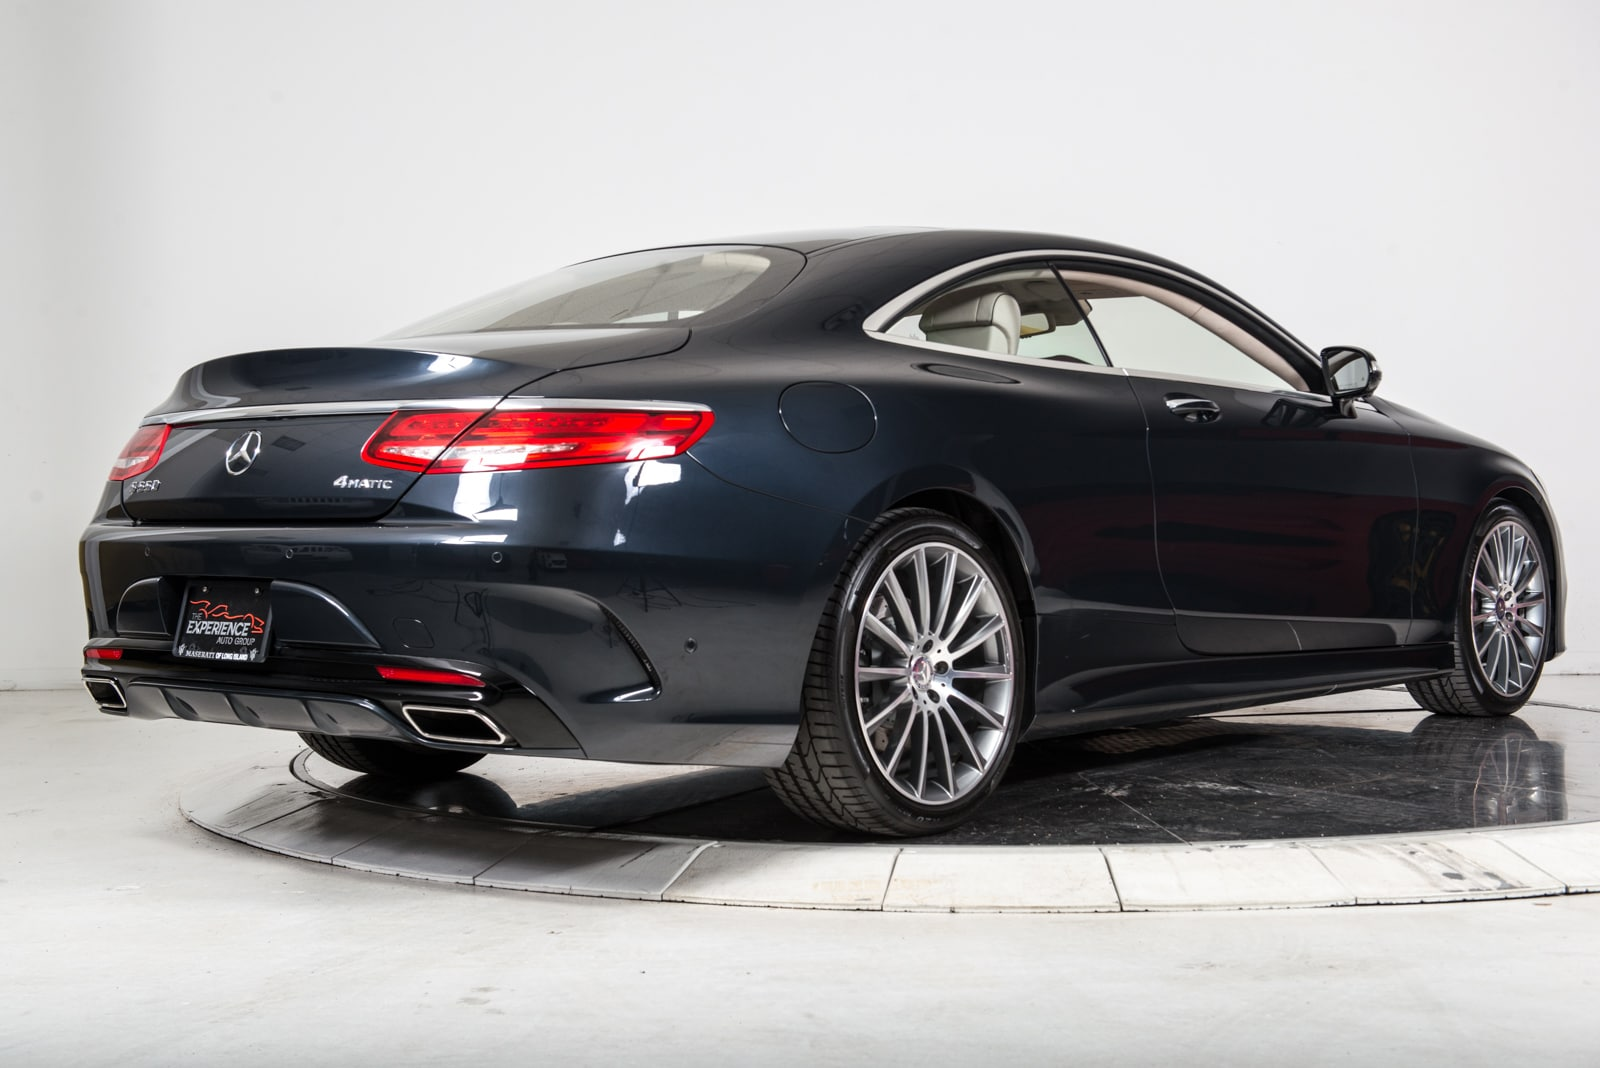 Used 2015 mercedes benz s550 4matic coupe for sale for Used mercedes benz s550 for sale